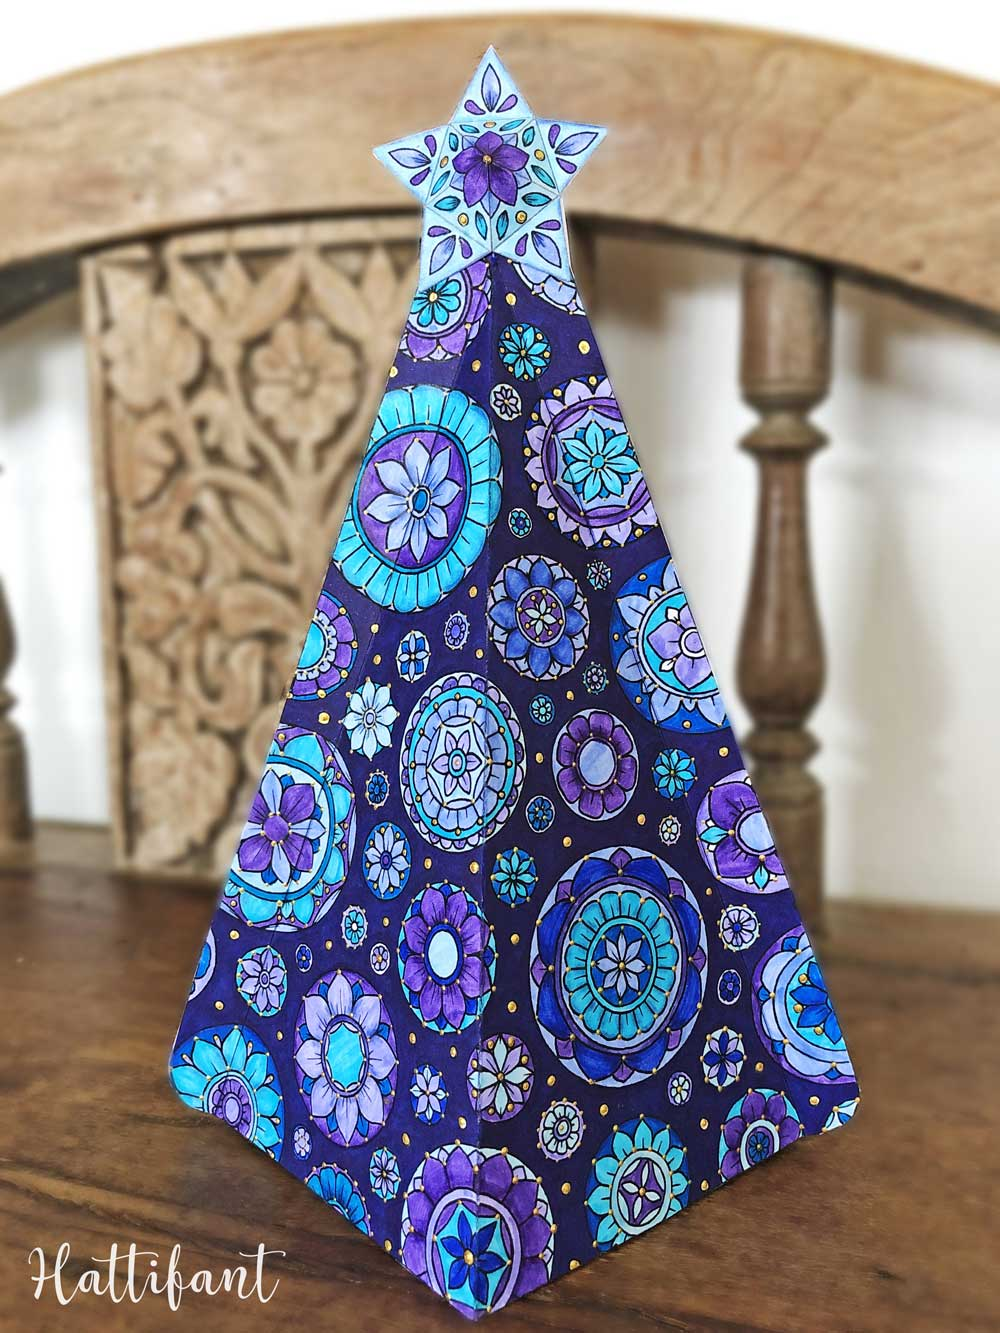 3d Mandala Christmas Tree Ensemble To Color Hattifant Christmas Tree Template Paper Christmas Decorations Paper Christmas Tree